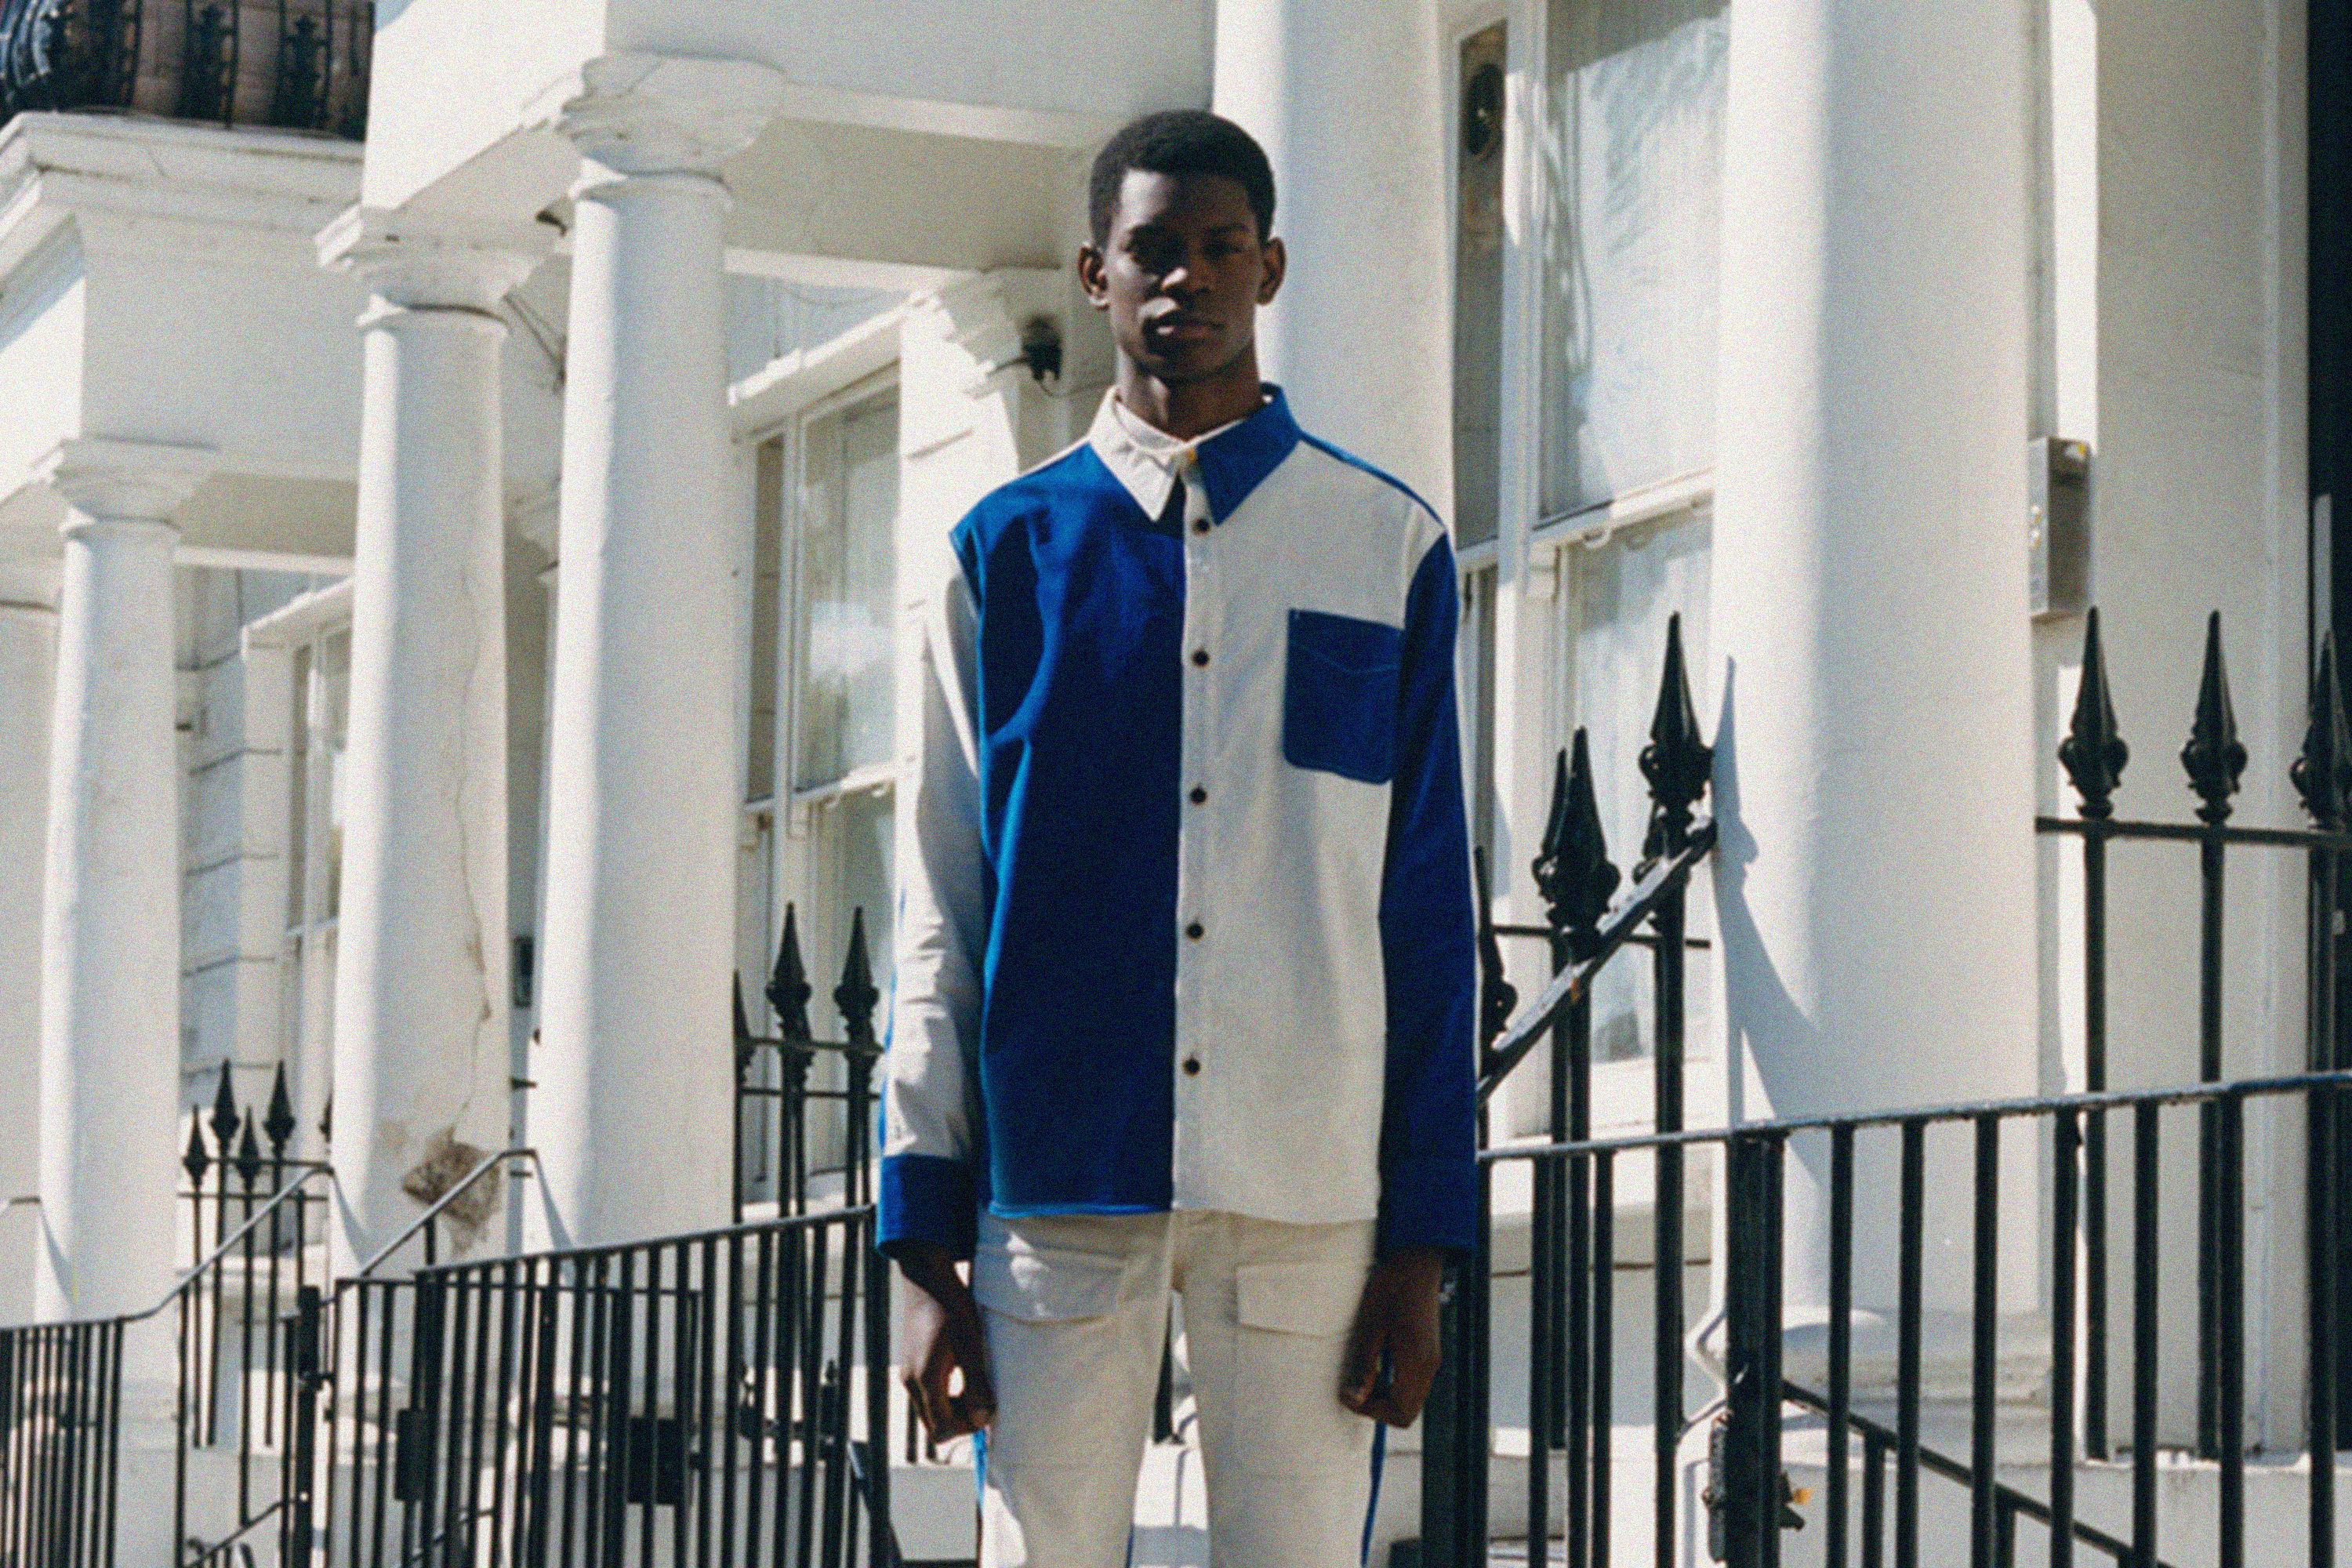 Wales Bonner SS21 Fashion Campaign Editorial